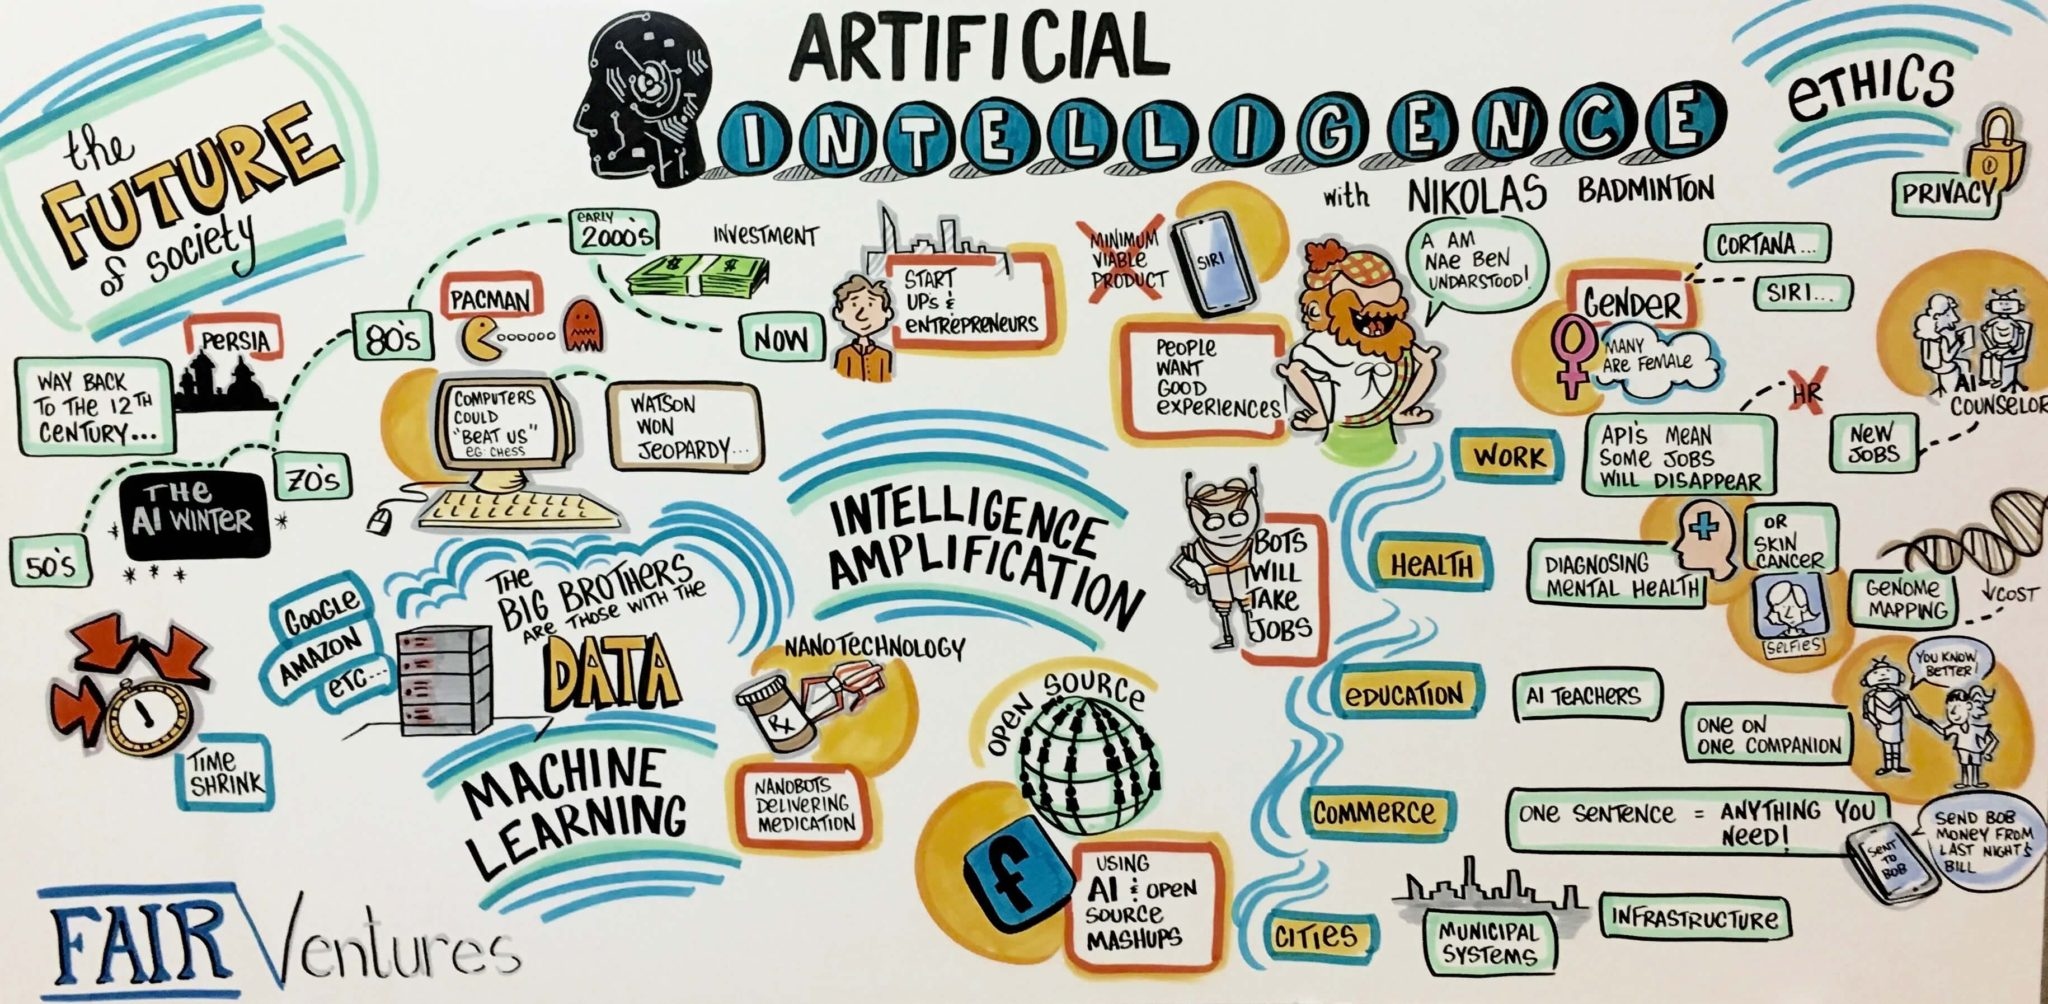 The Future of Society and Artificial Intelligence